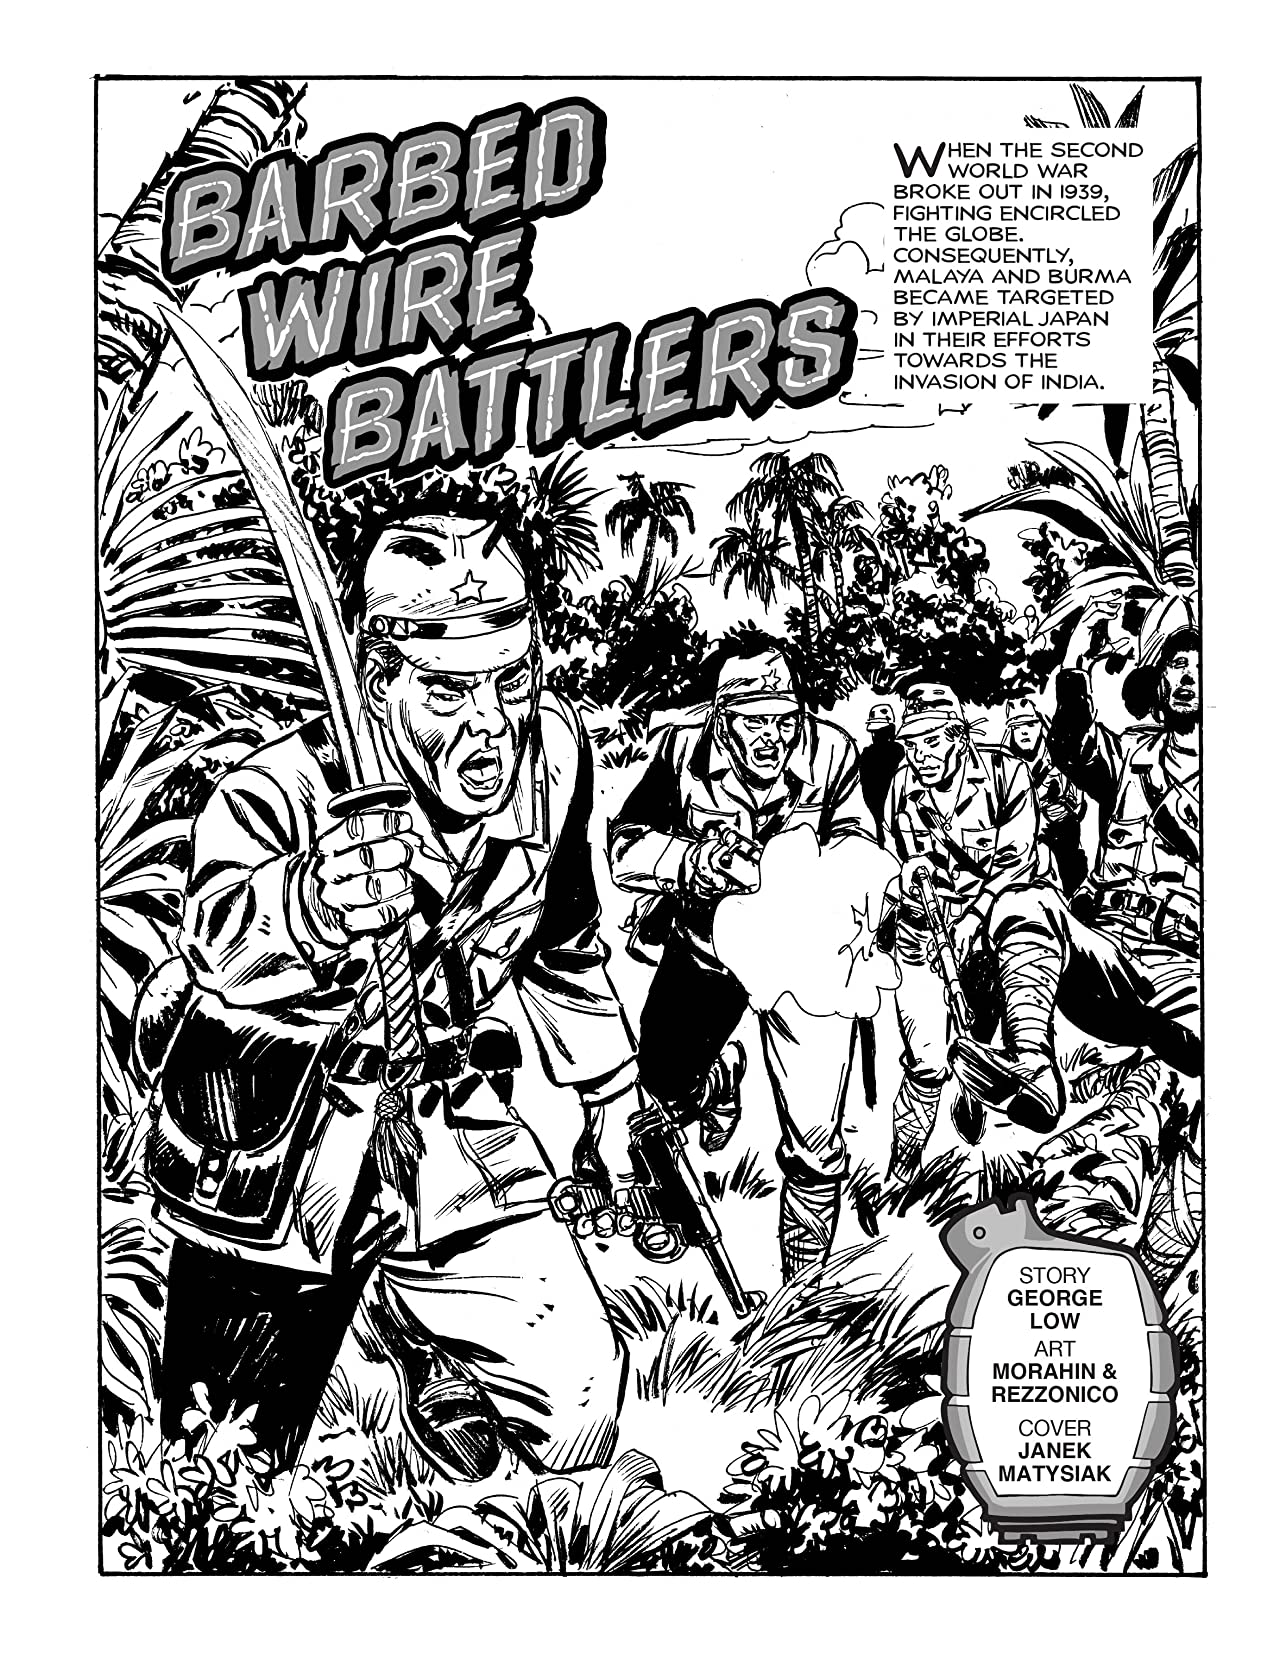 Commando #4993: Barbed Wire Battlers